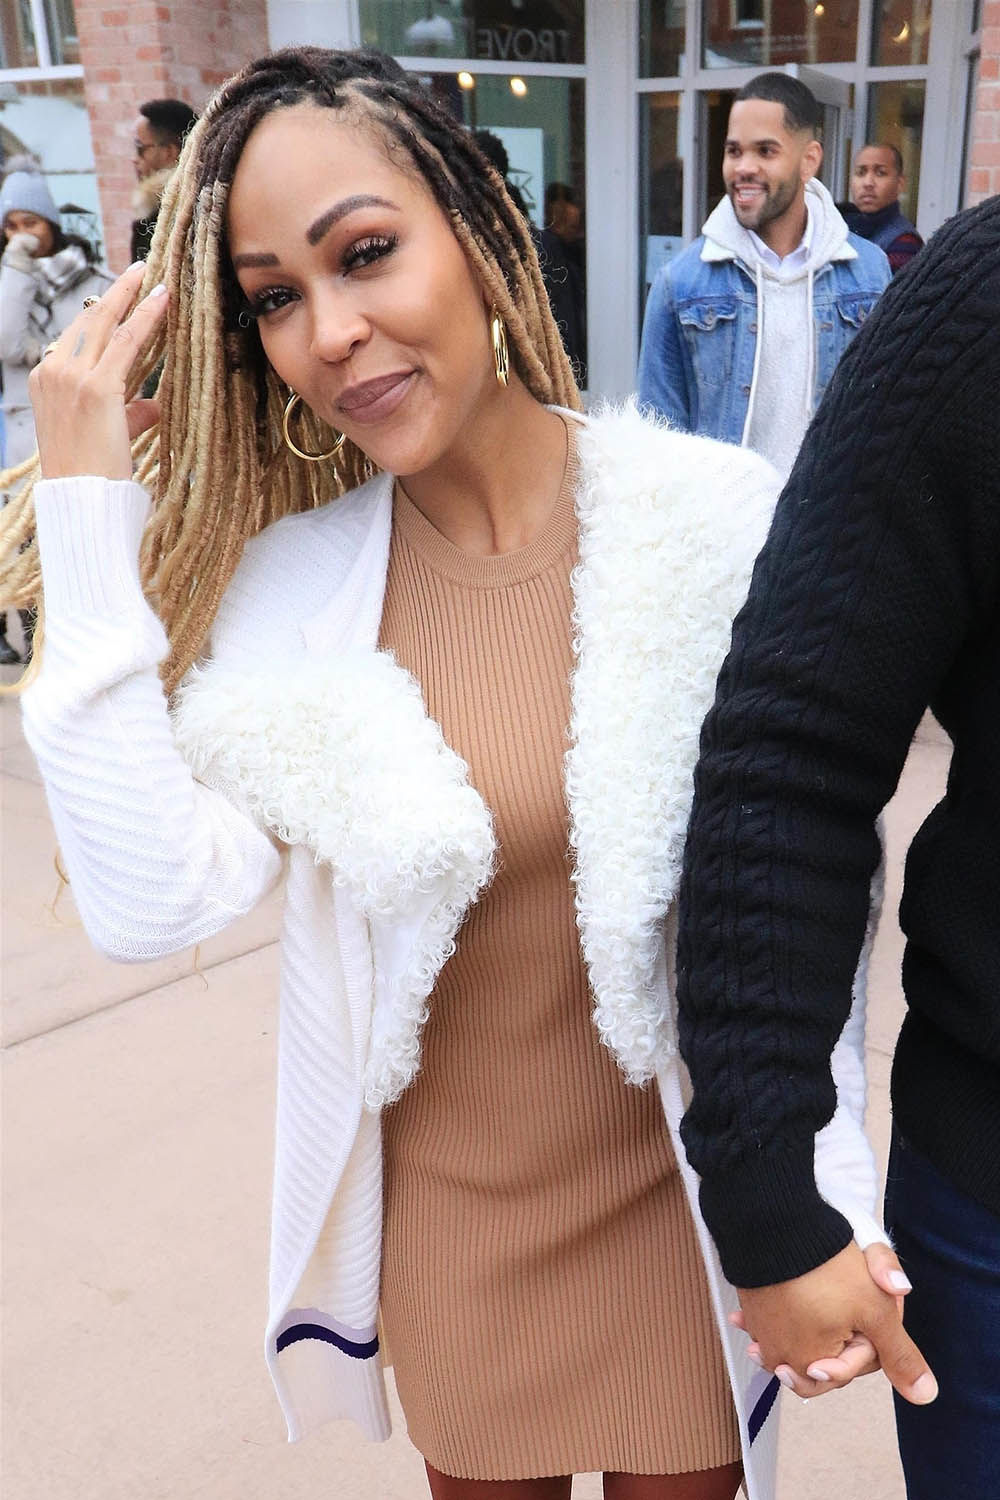 Meagan Good all smiles at the Sundance Film Festival